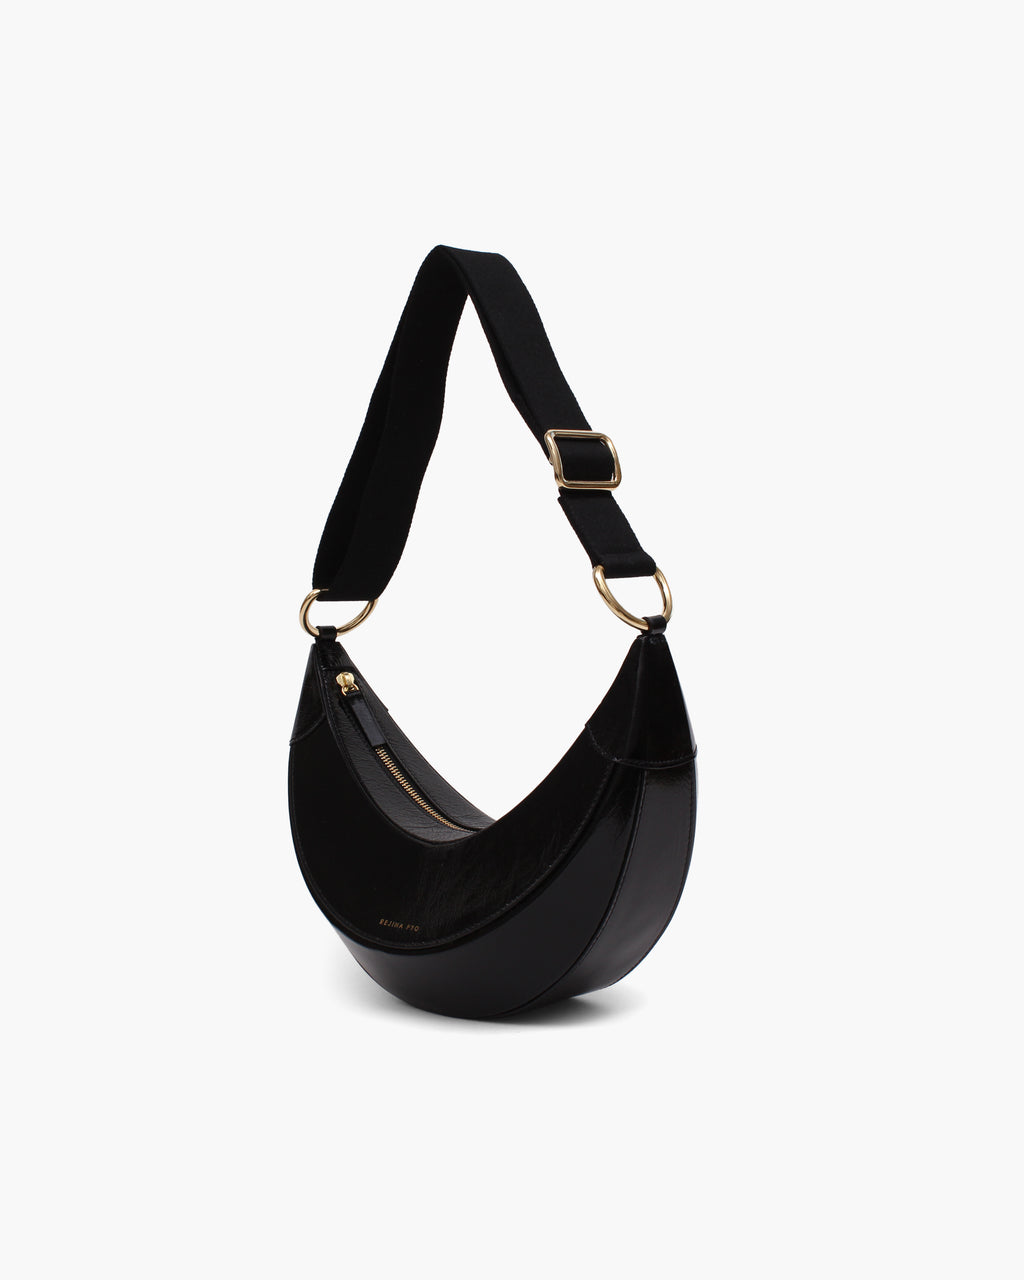 Banana Bag Leather Crinkle Black - WEBSHOP EXCLUSIVE